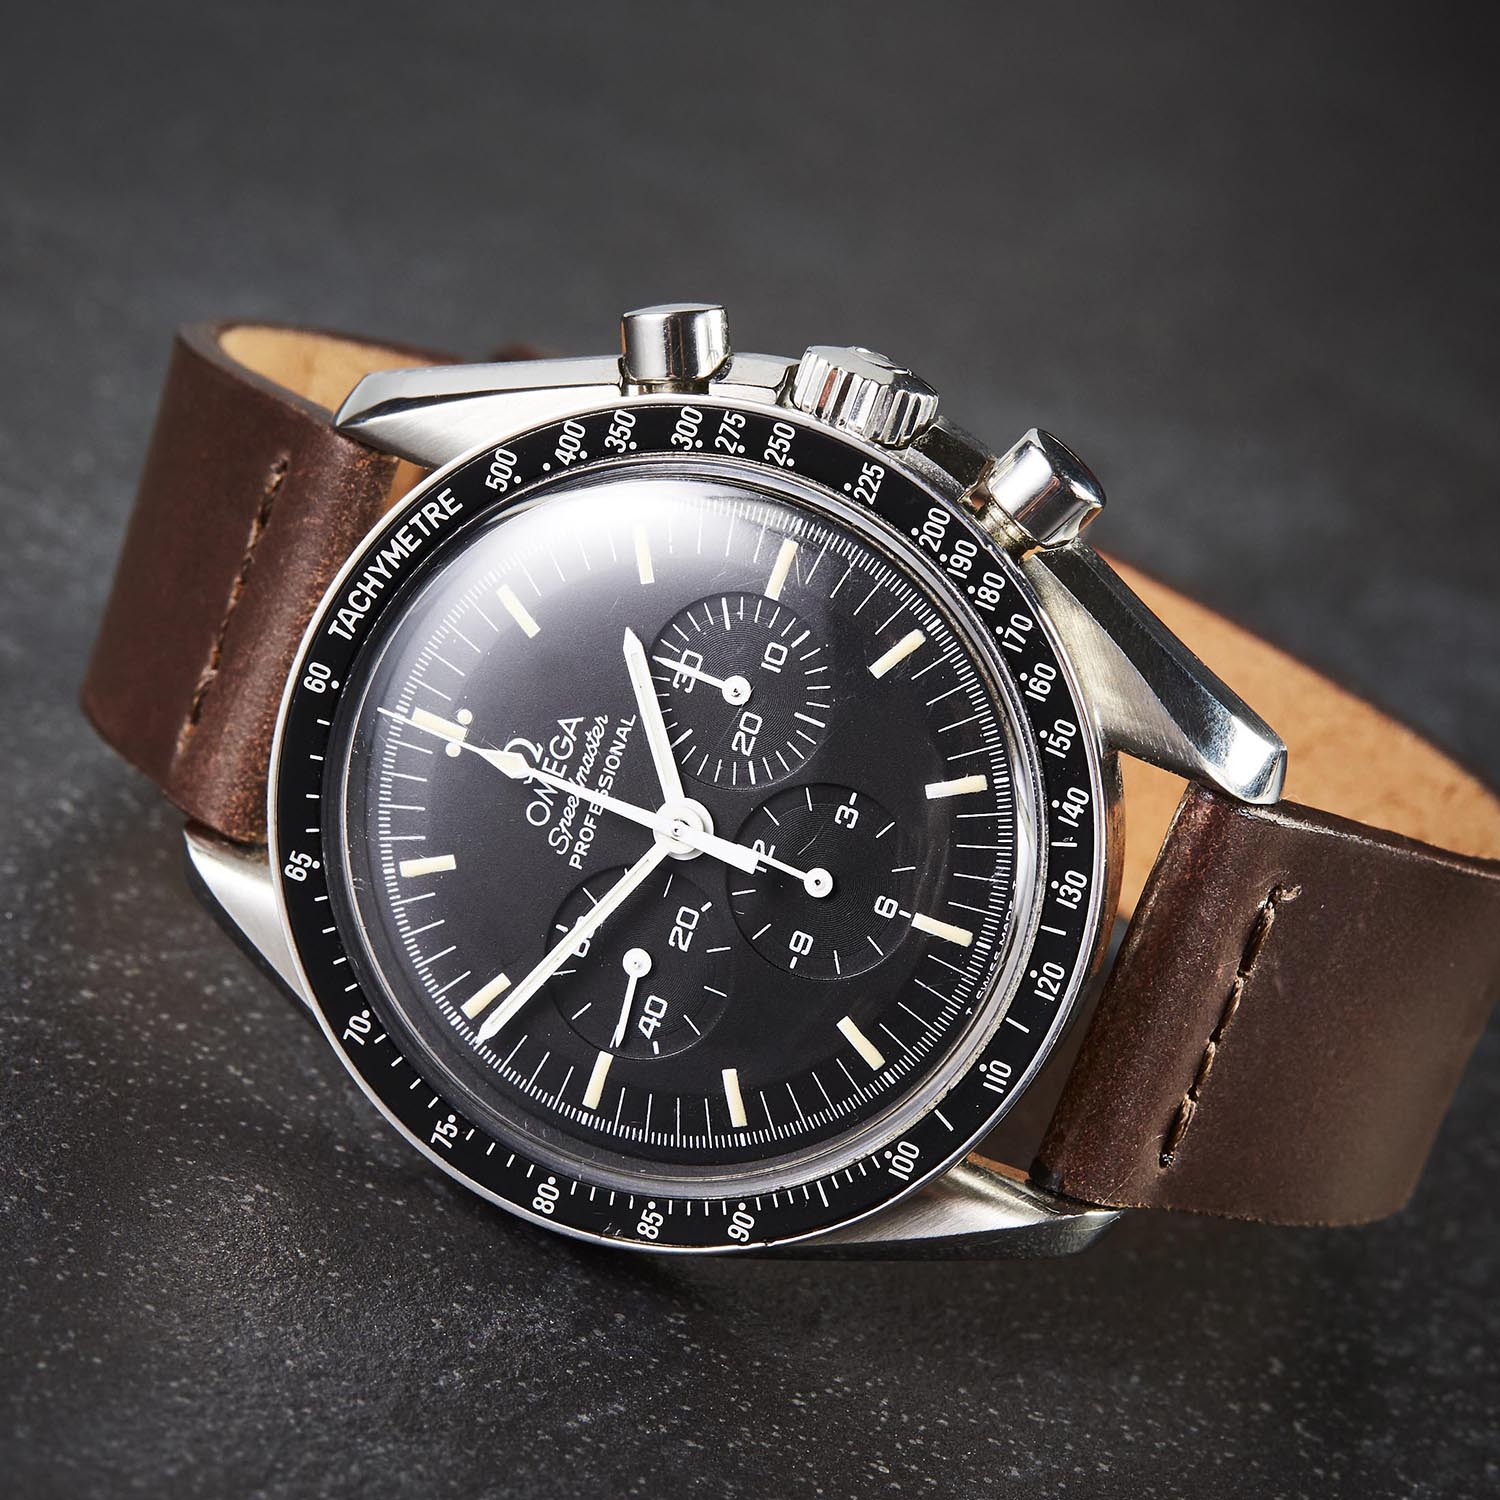 In defence of obvious watches